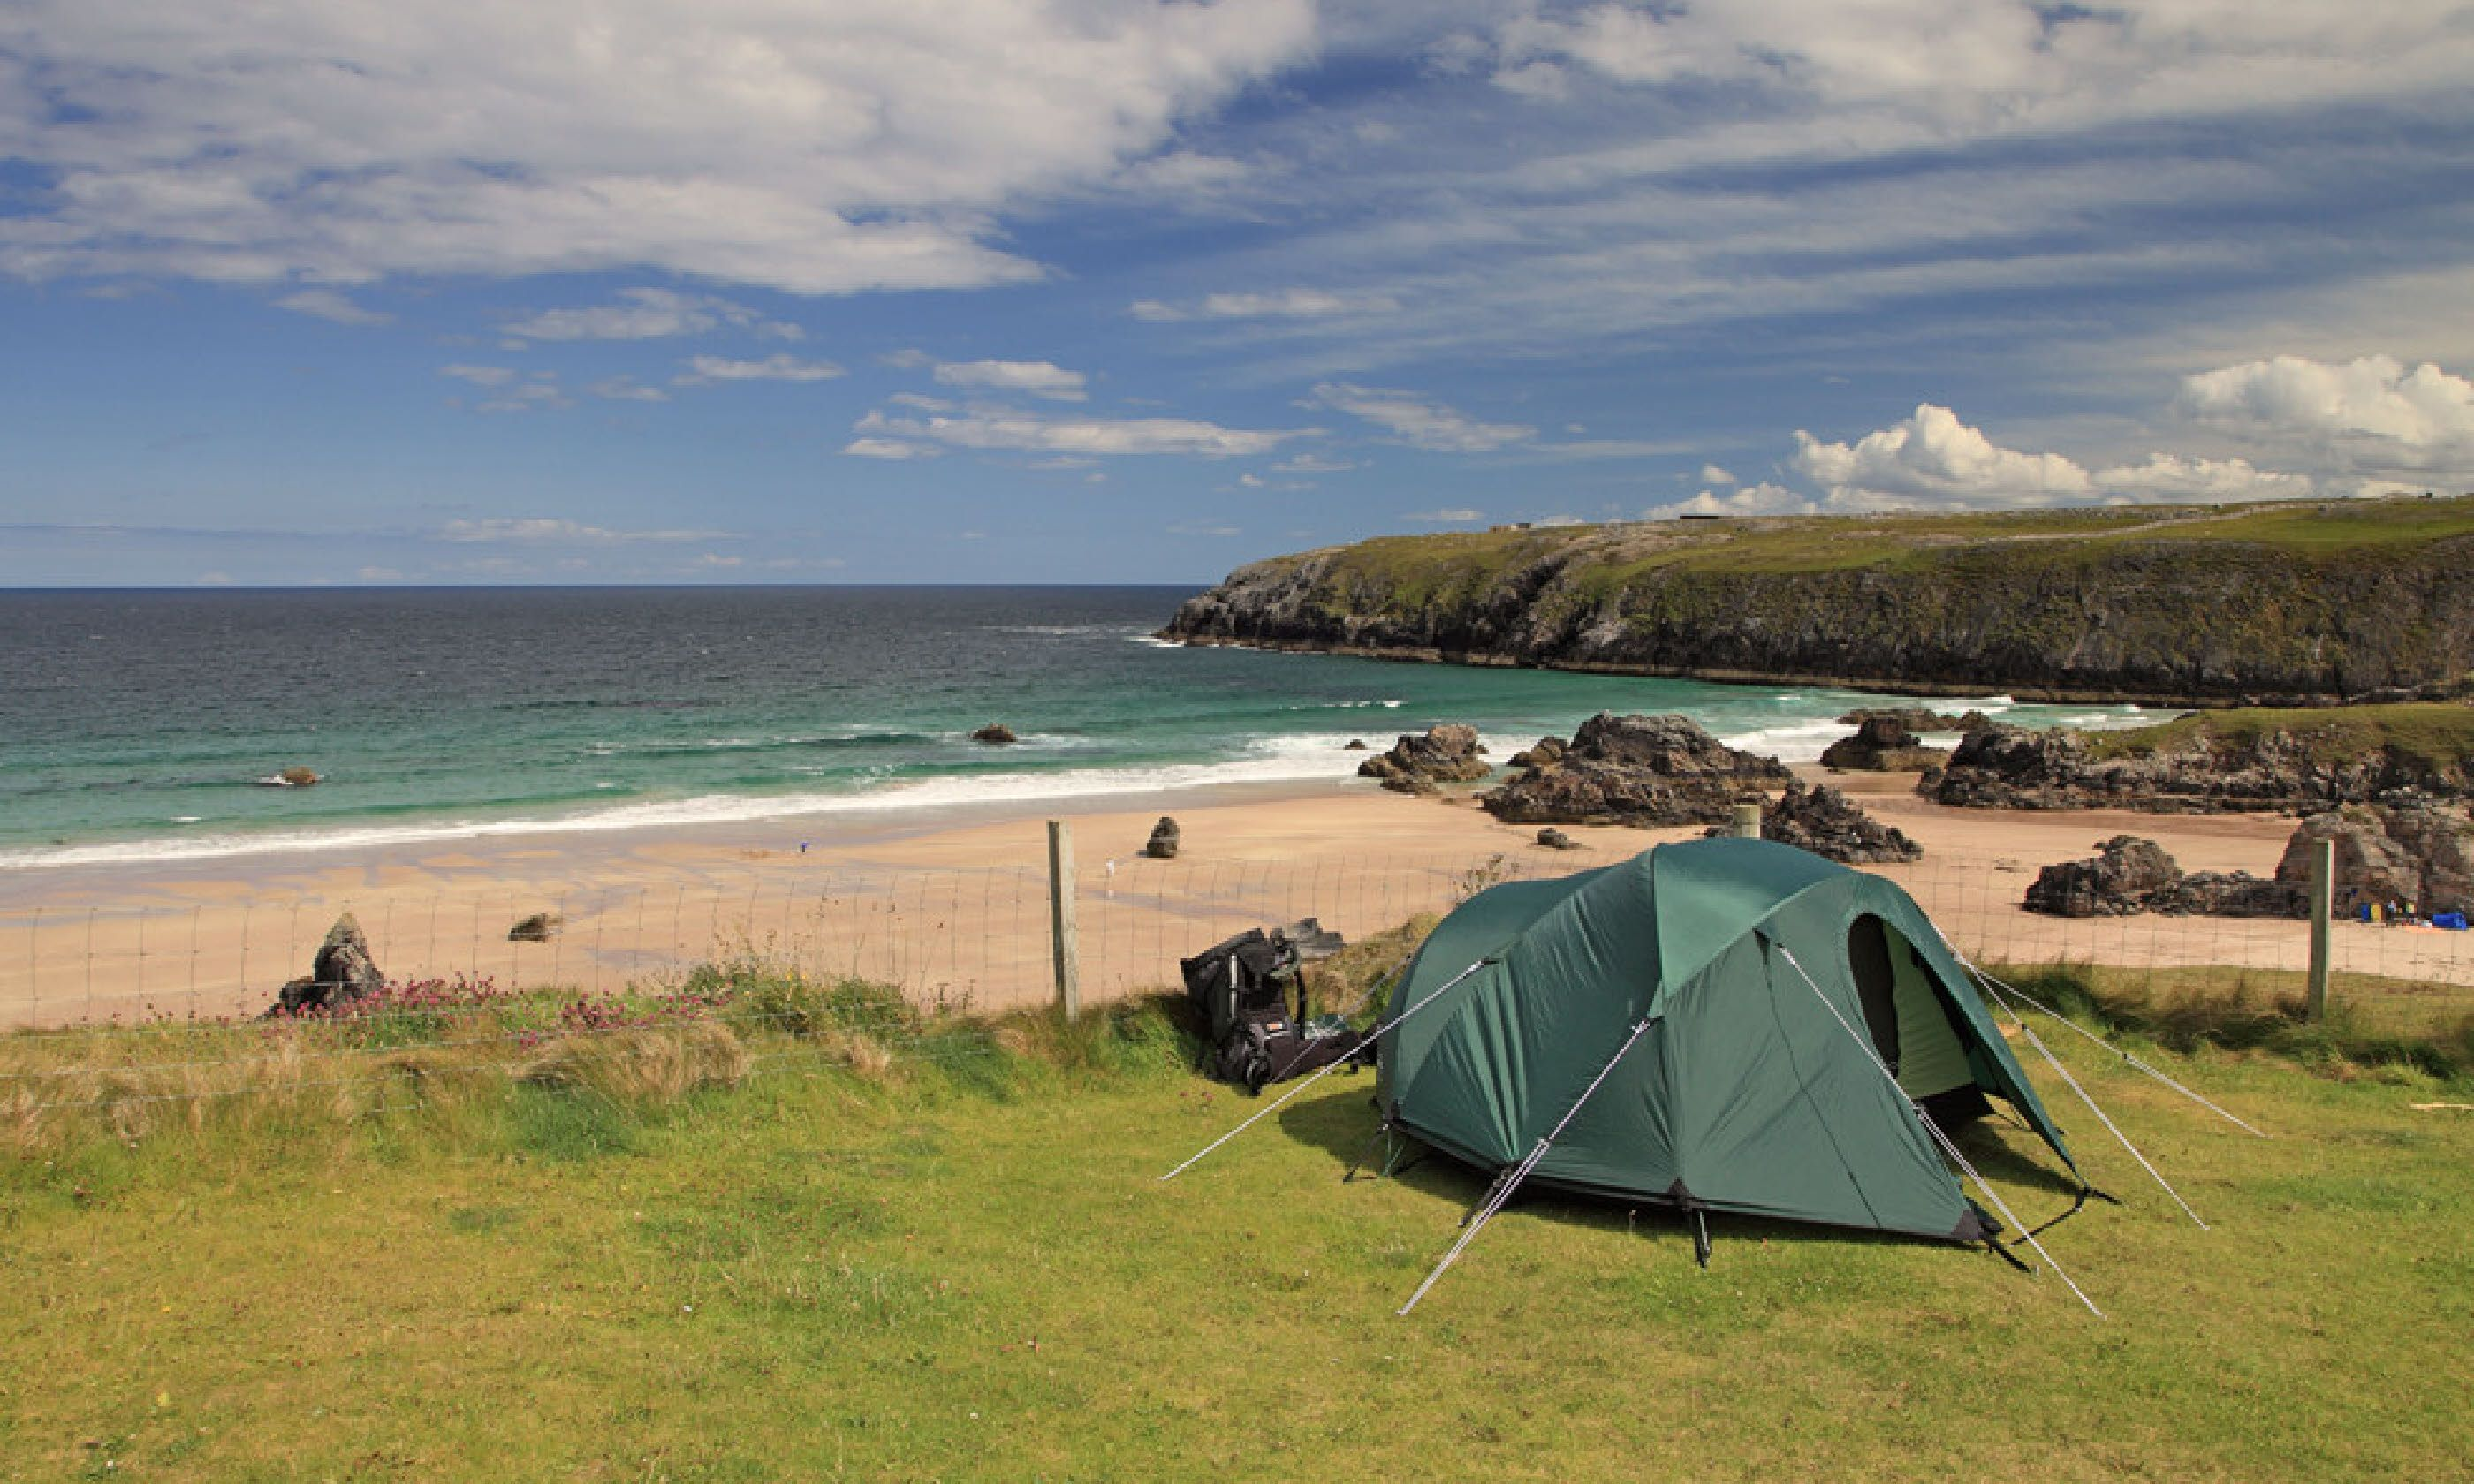 ... highest sea cliffs in Britain and a thrilling sense of freedom. Then you can return to your tent on its cliff-top eyrie and stay awake for that sunset. & Scotlandu0027s 7 best campsites | Wanderlust